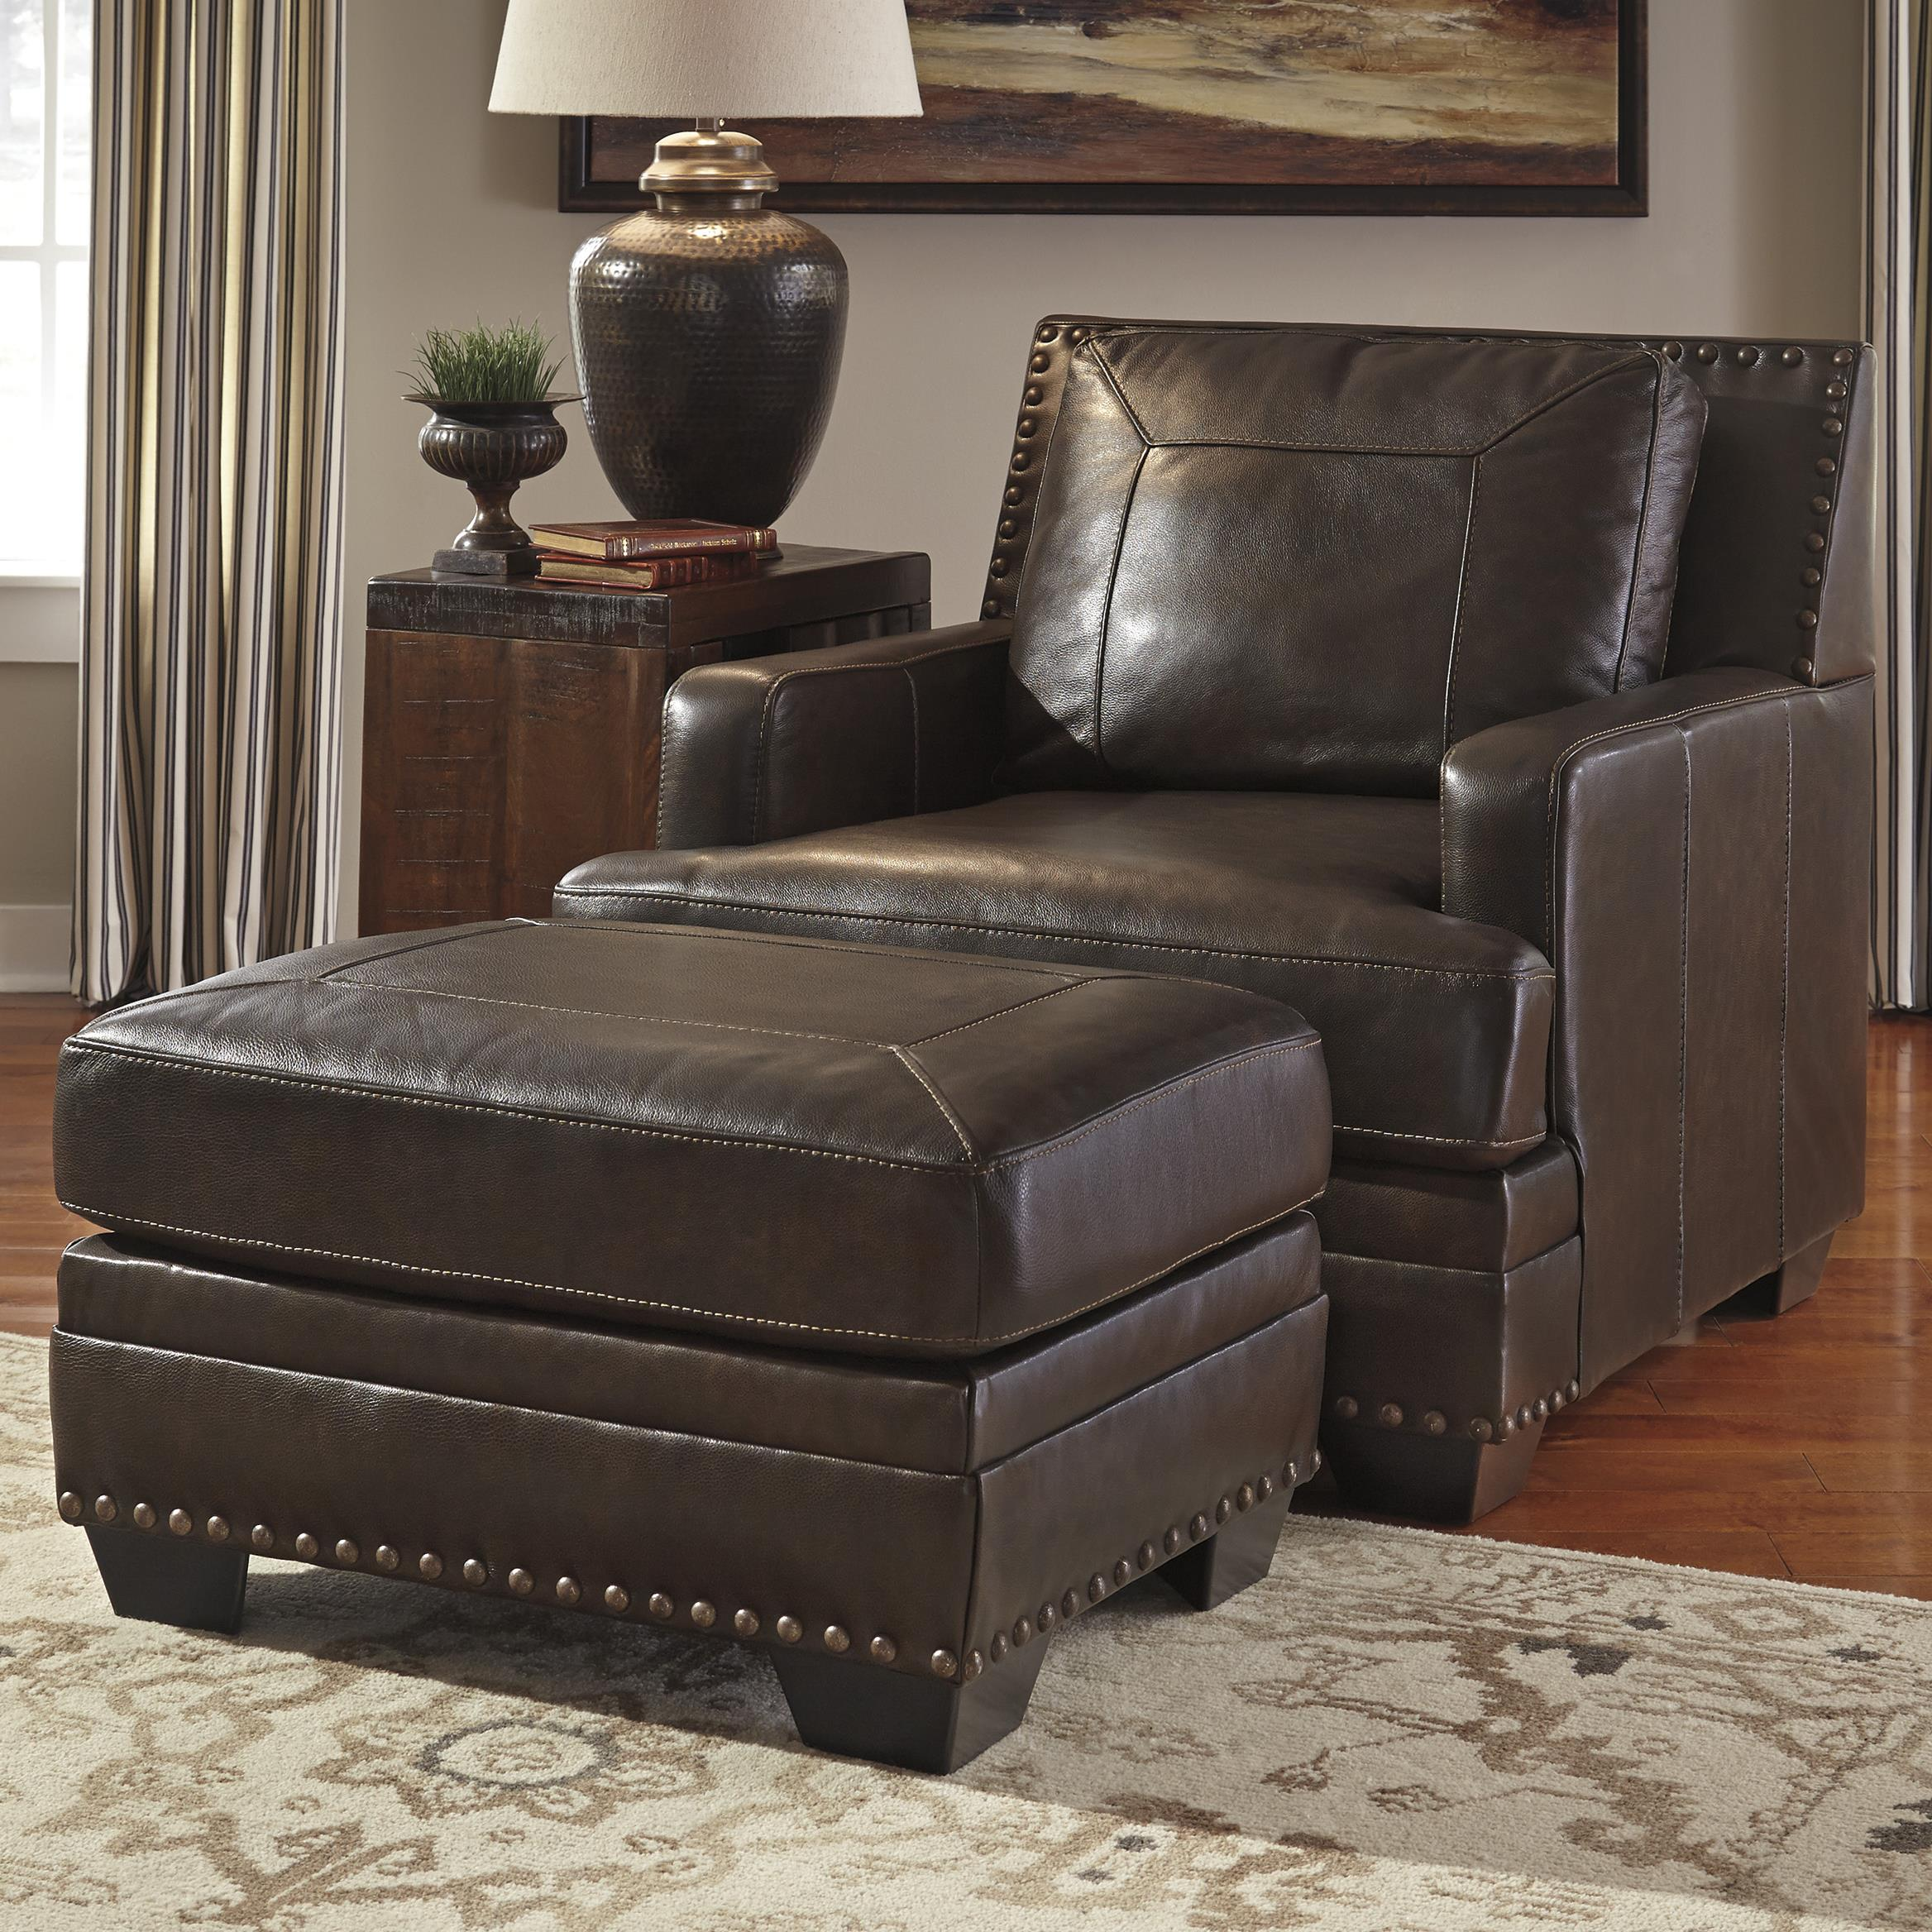 Signature Design by Ashley Corvan Chair & Ottoman - Item Number: 6910320+14